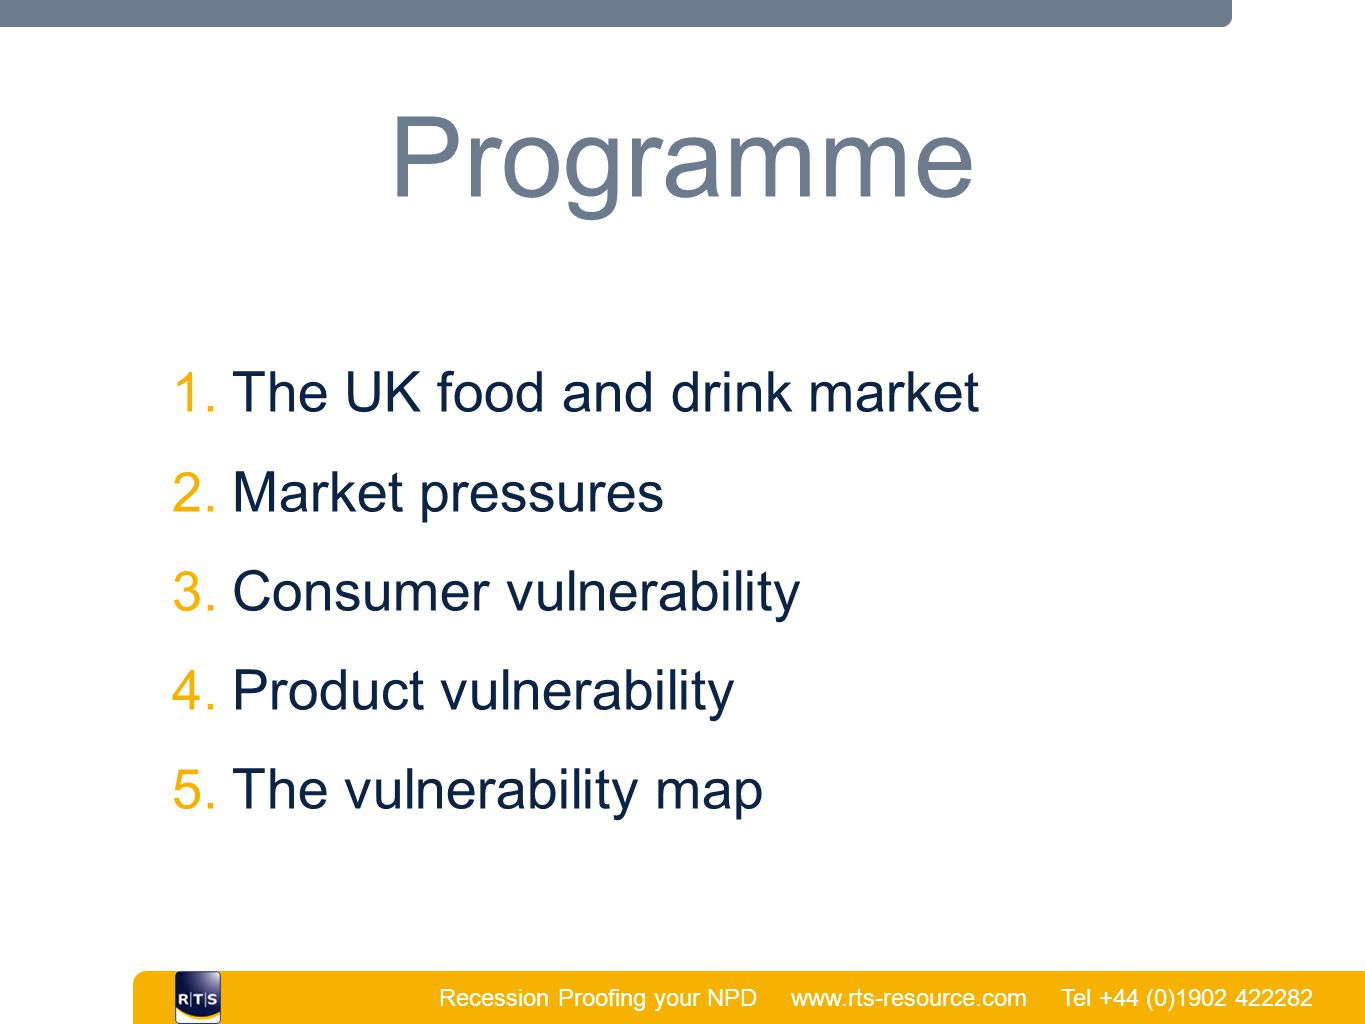 Recession Proofing your NPD www.rts-resource.com Tel +44 (0)1902 422282 | Programme 1. The UK food and drink market 2. Market pressures 3. Consumer vu